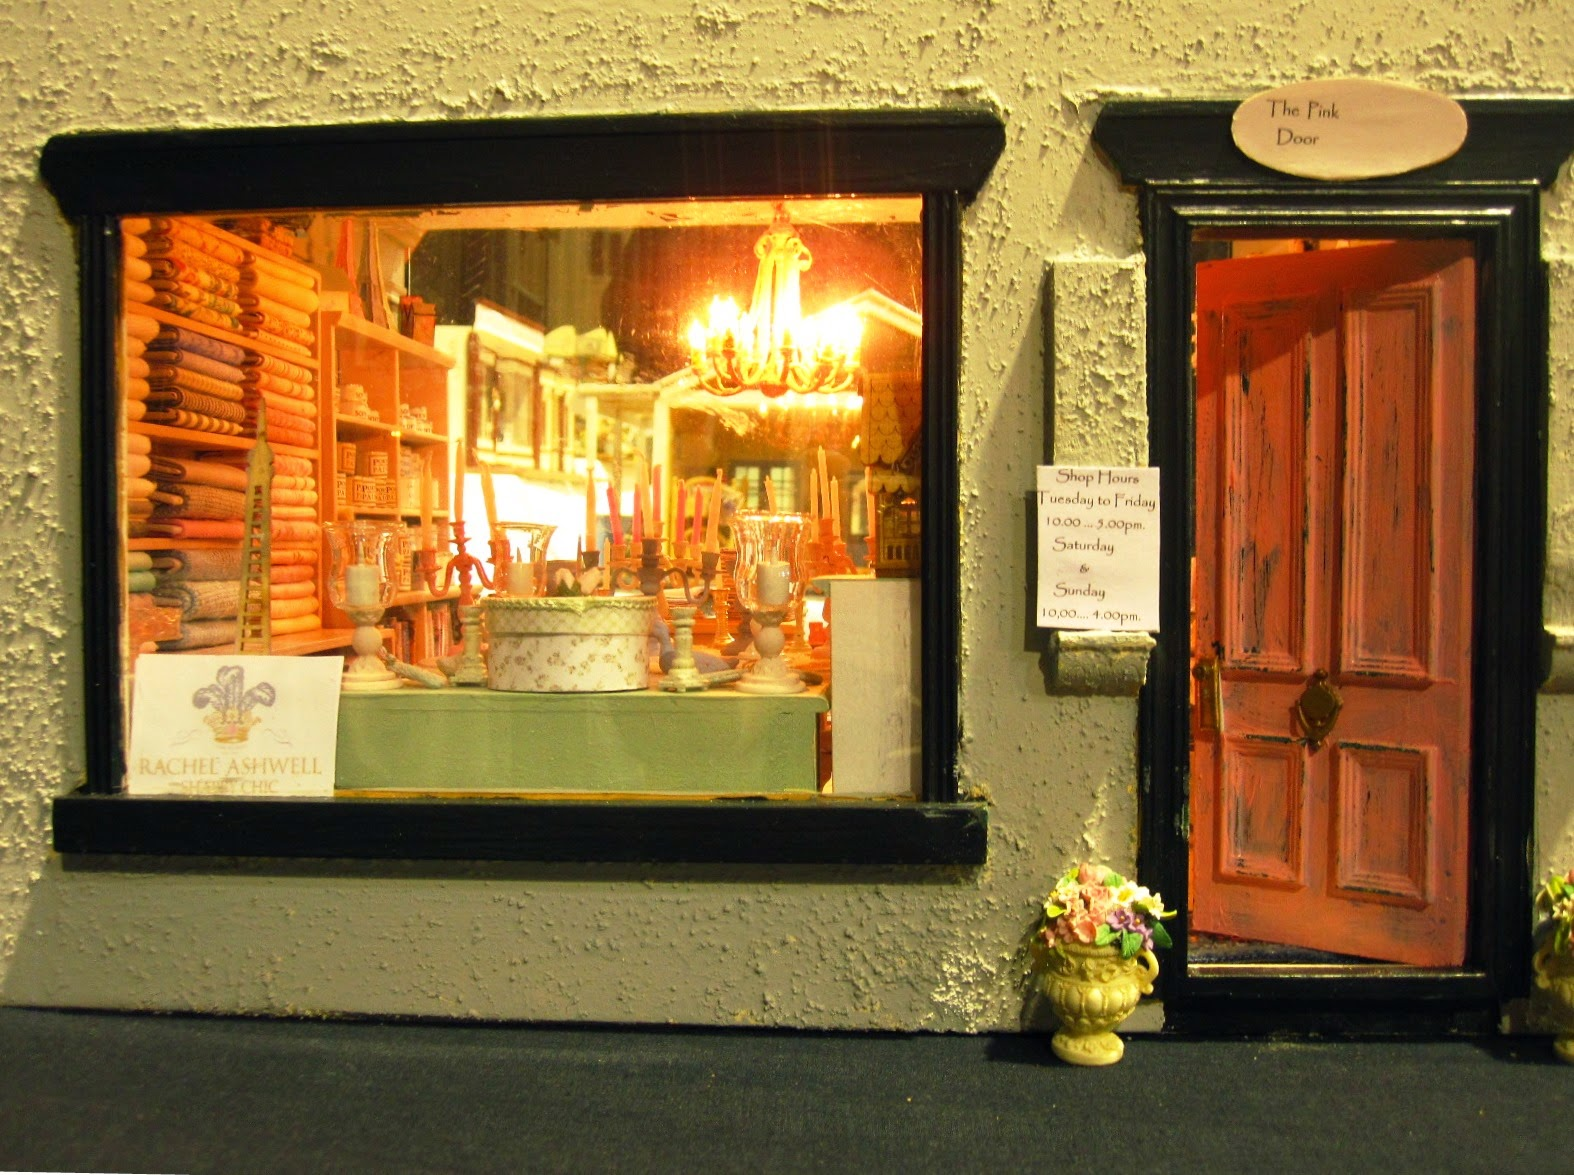 Close up of a modern miniature shop, showing a display window showing shabby chic items and a pink front door.